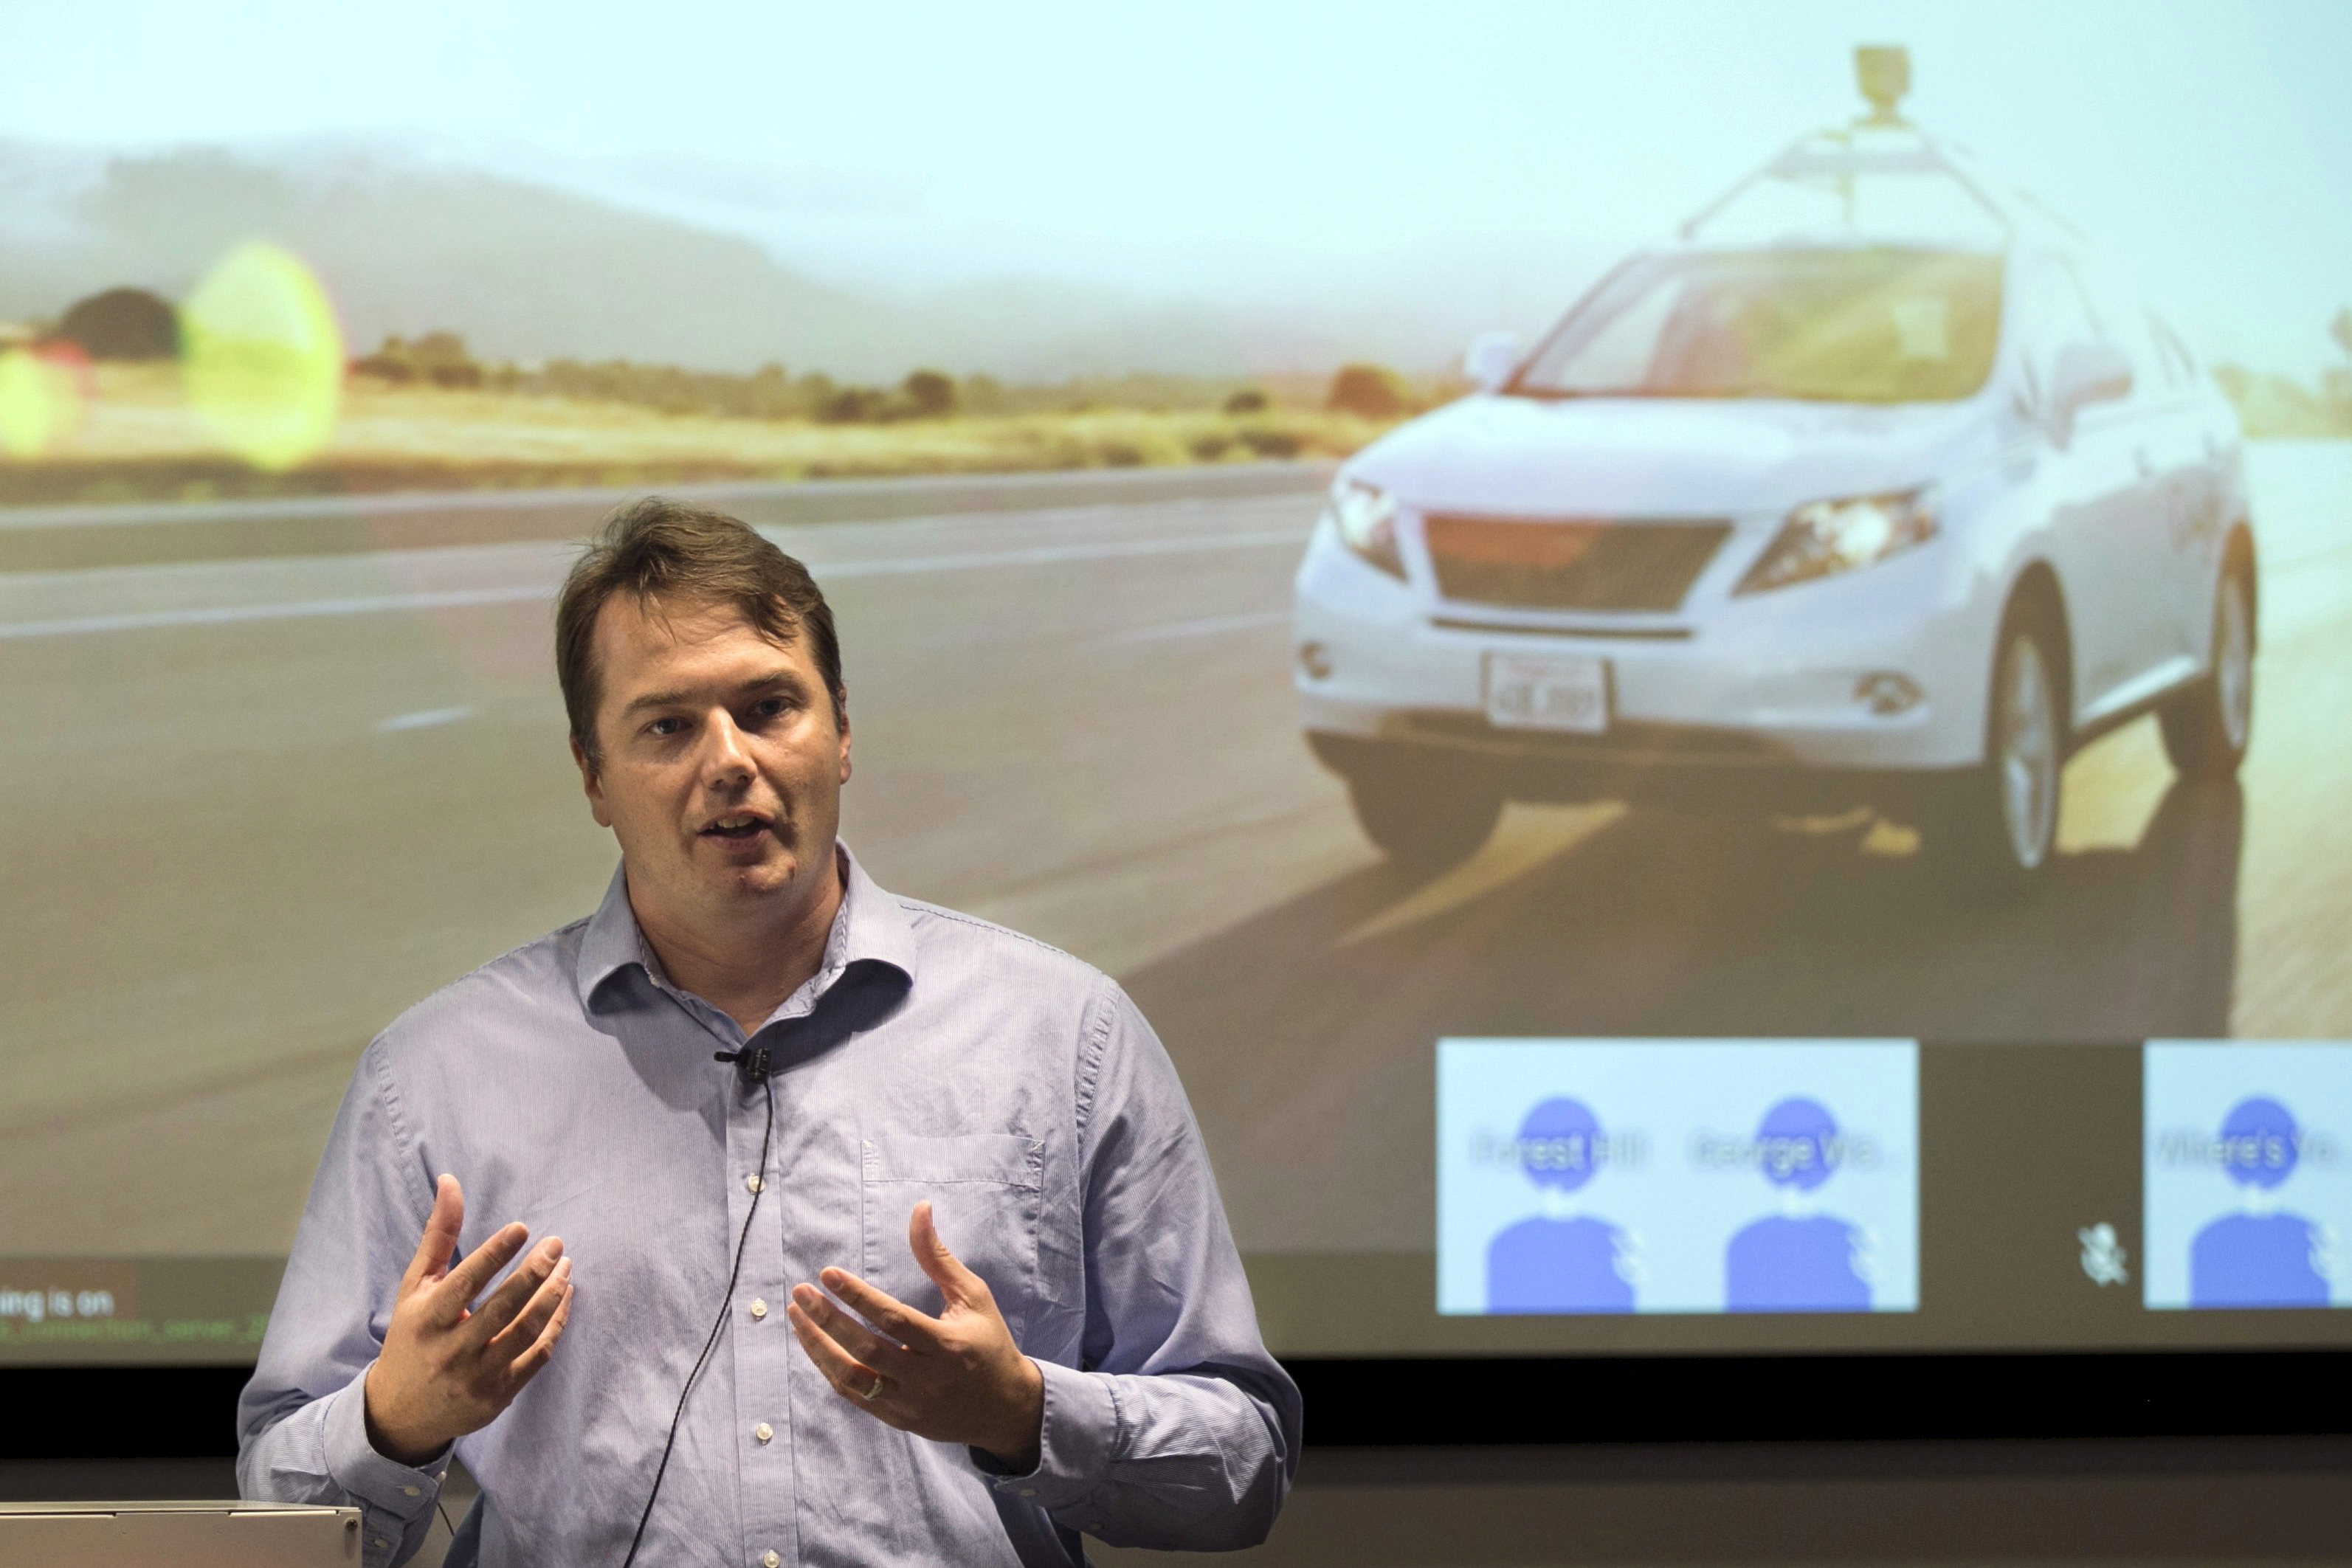 Chris Urmson, director of the Self Driving Cars Project at Google, speaks during a preview of Google's prototype autonomous vehicles in Mountain View, California, U.S., September 29, 2015. REUTERS/Elijah Nouvelage/File Photo